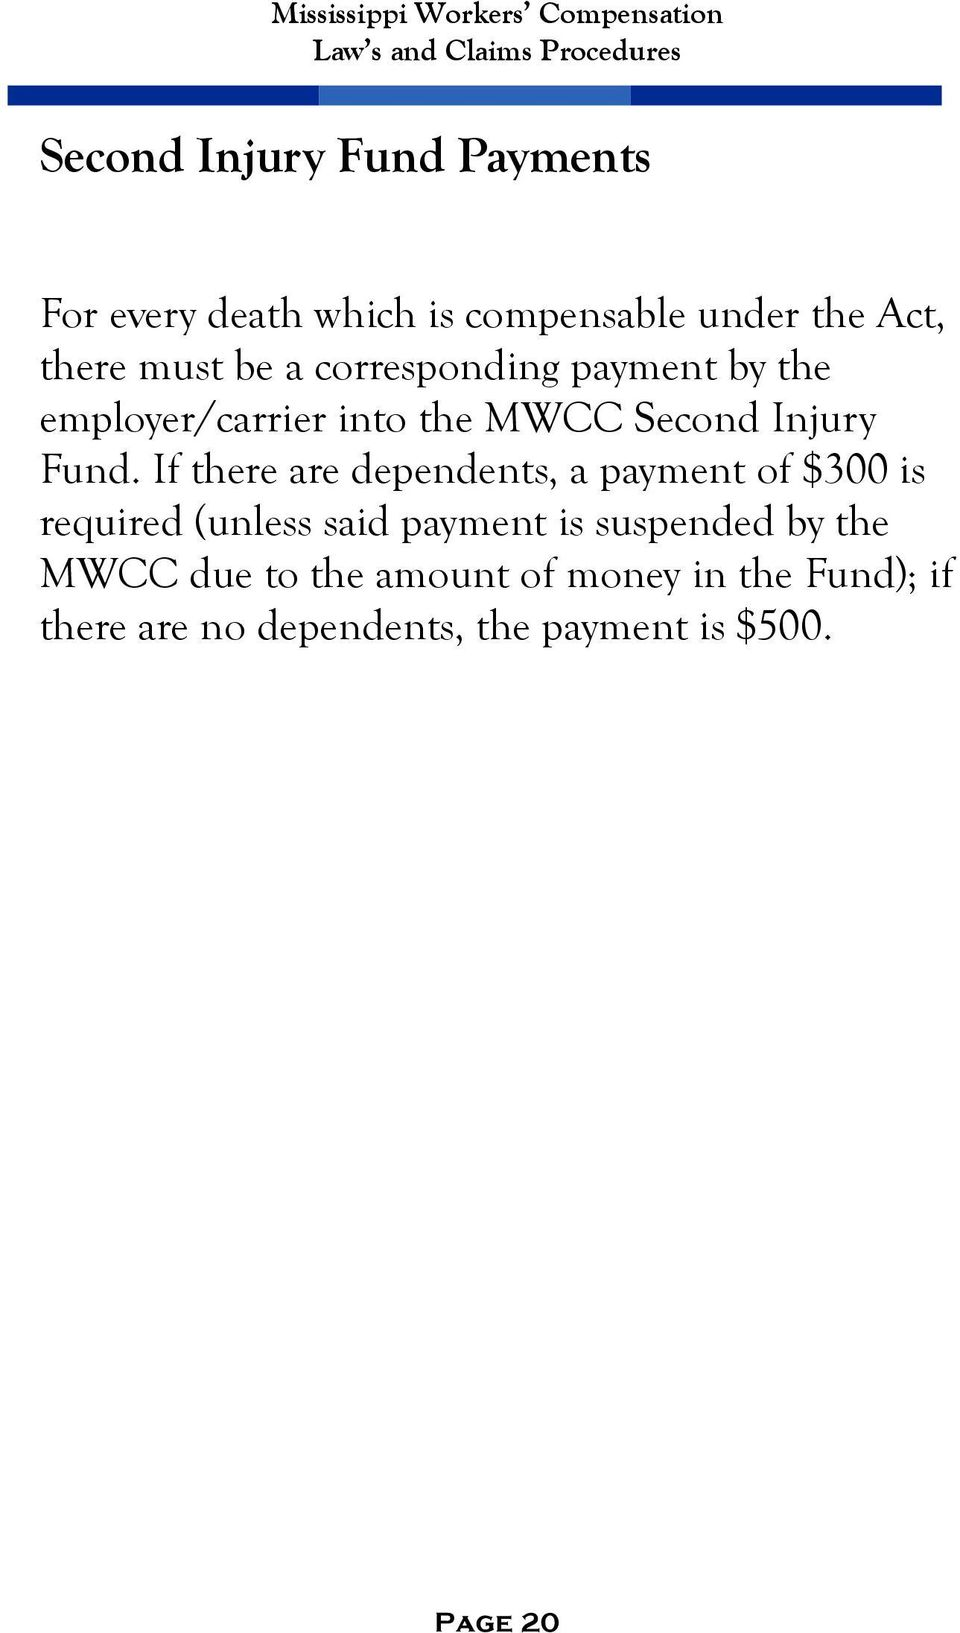 If there are dependents, a payment of $300 is required (unless said payment is suspended by